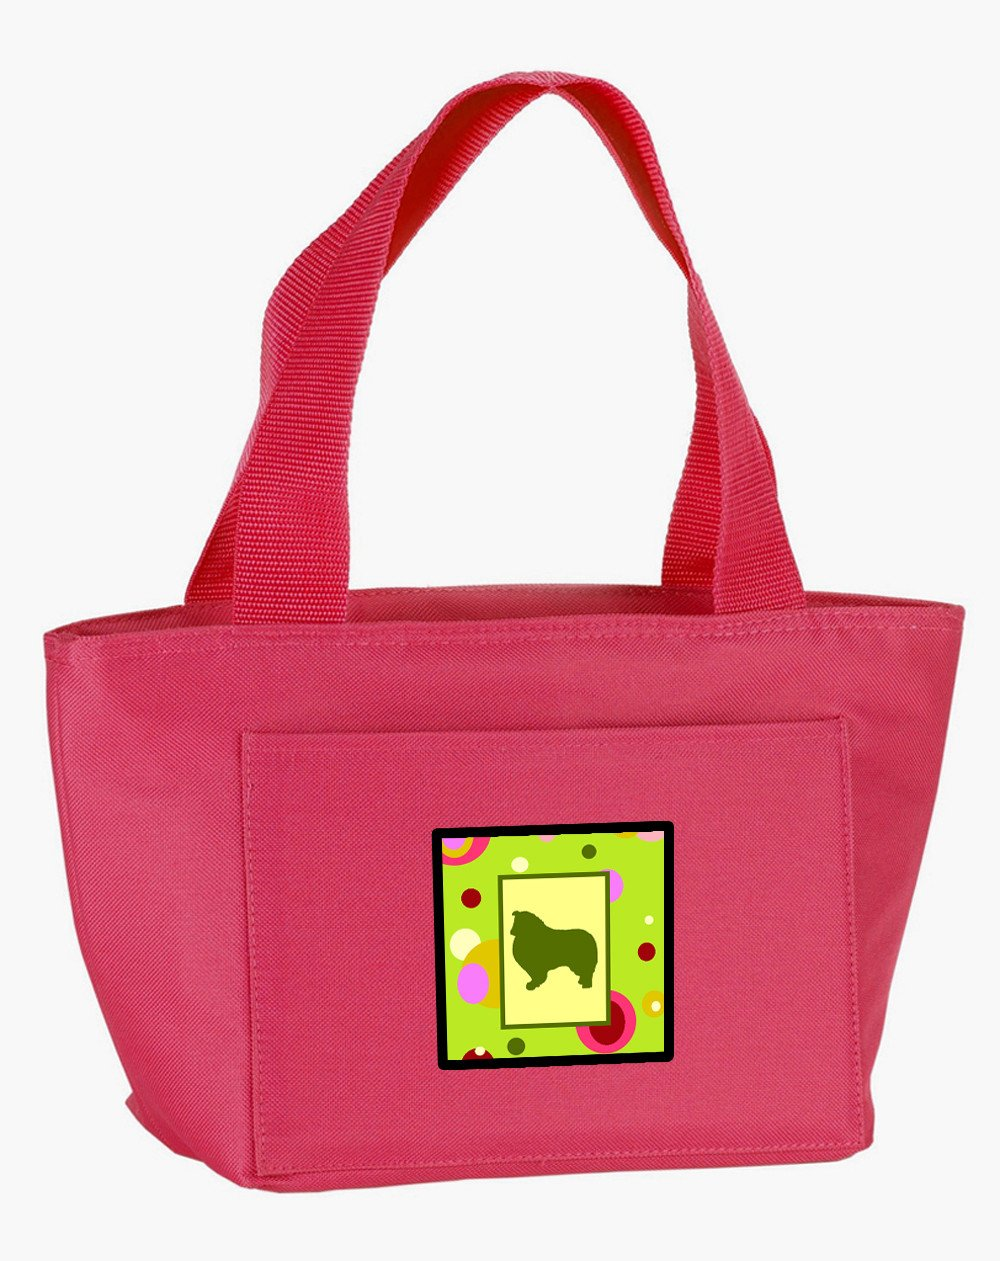 Lime Green Dots Collie Lunch Bag CK1126PK-8808 by Caroline's Treasures